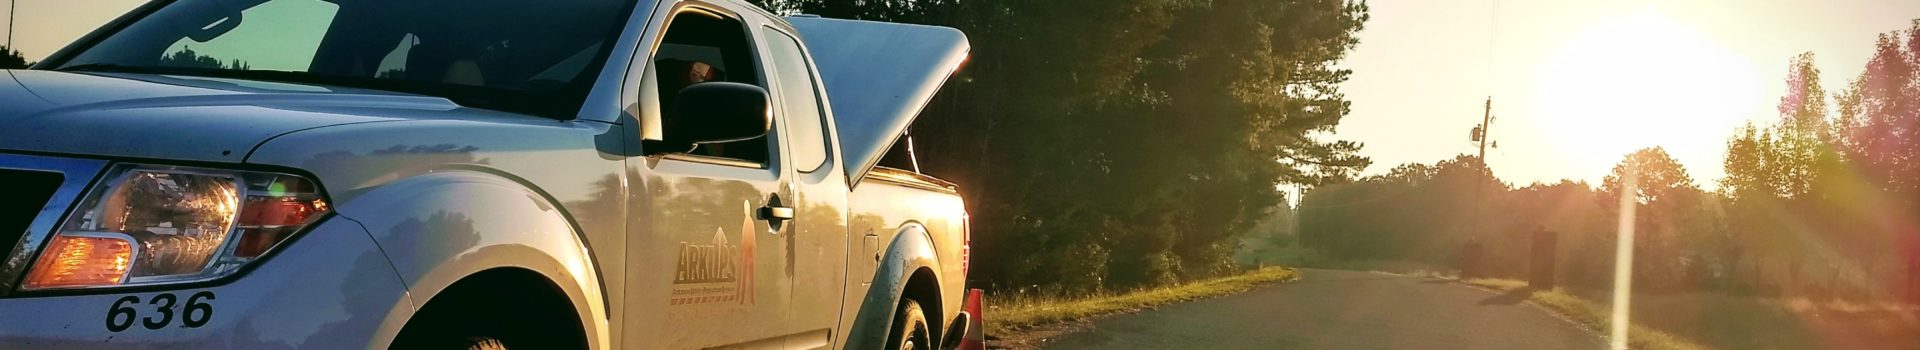 cropped-truck_with_sun_cbyers.jpg